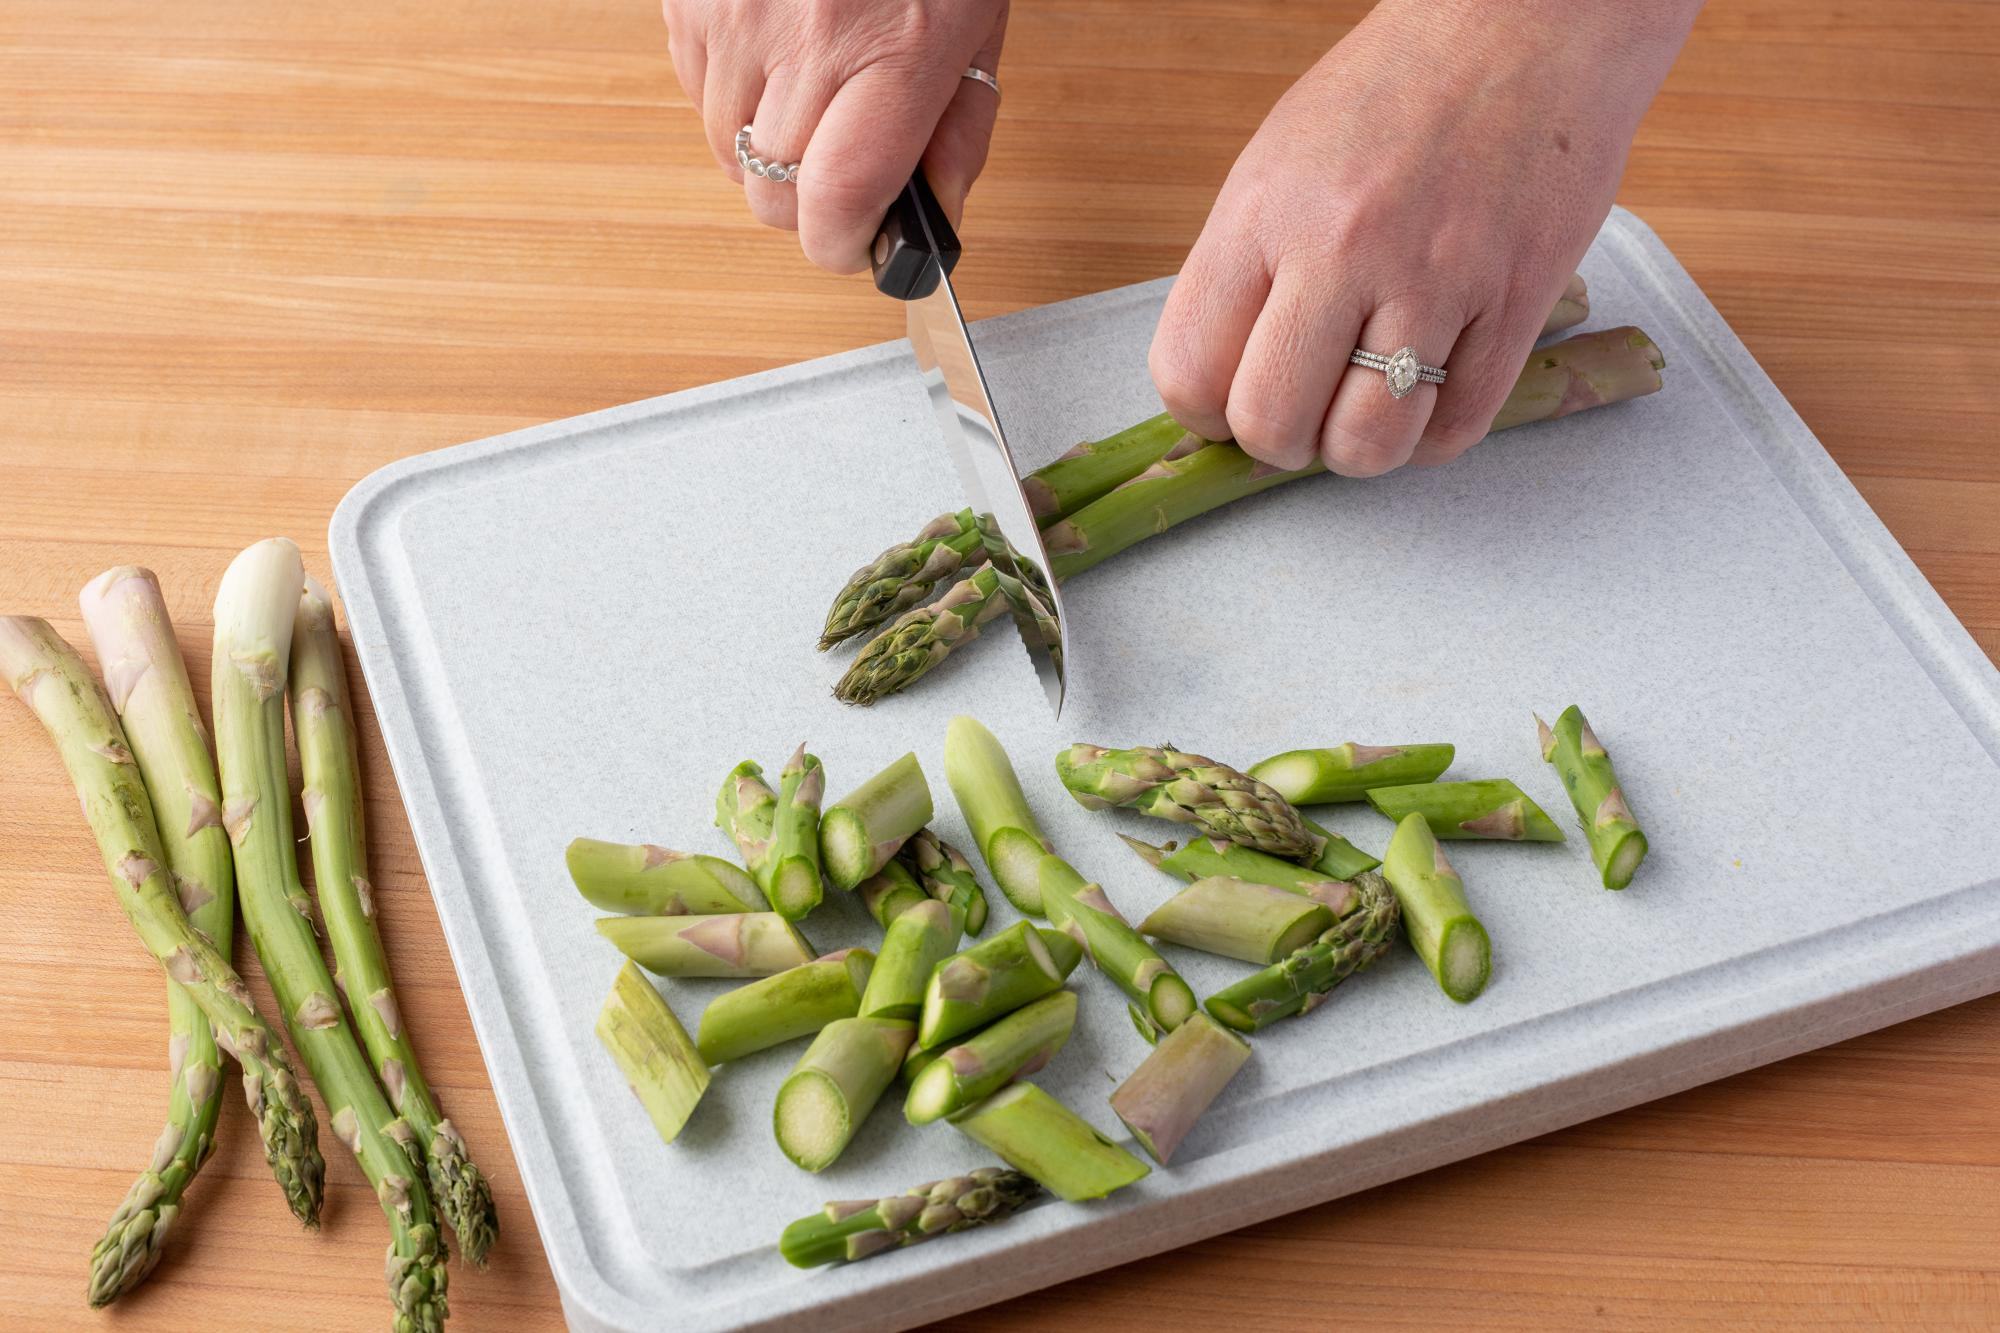 Trimming the Asparagus with a Santoku-Style-Trimmer